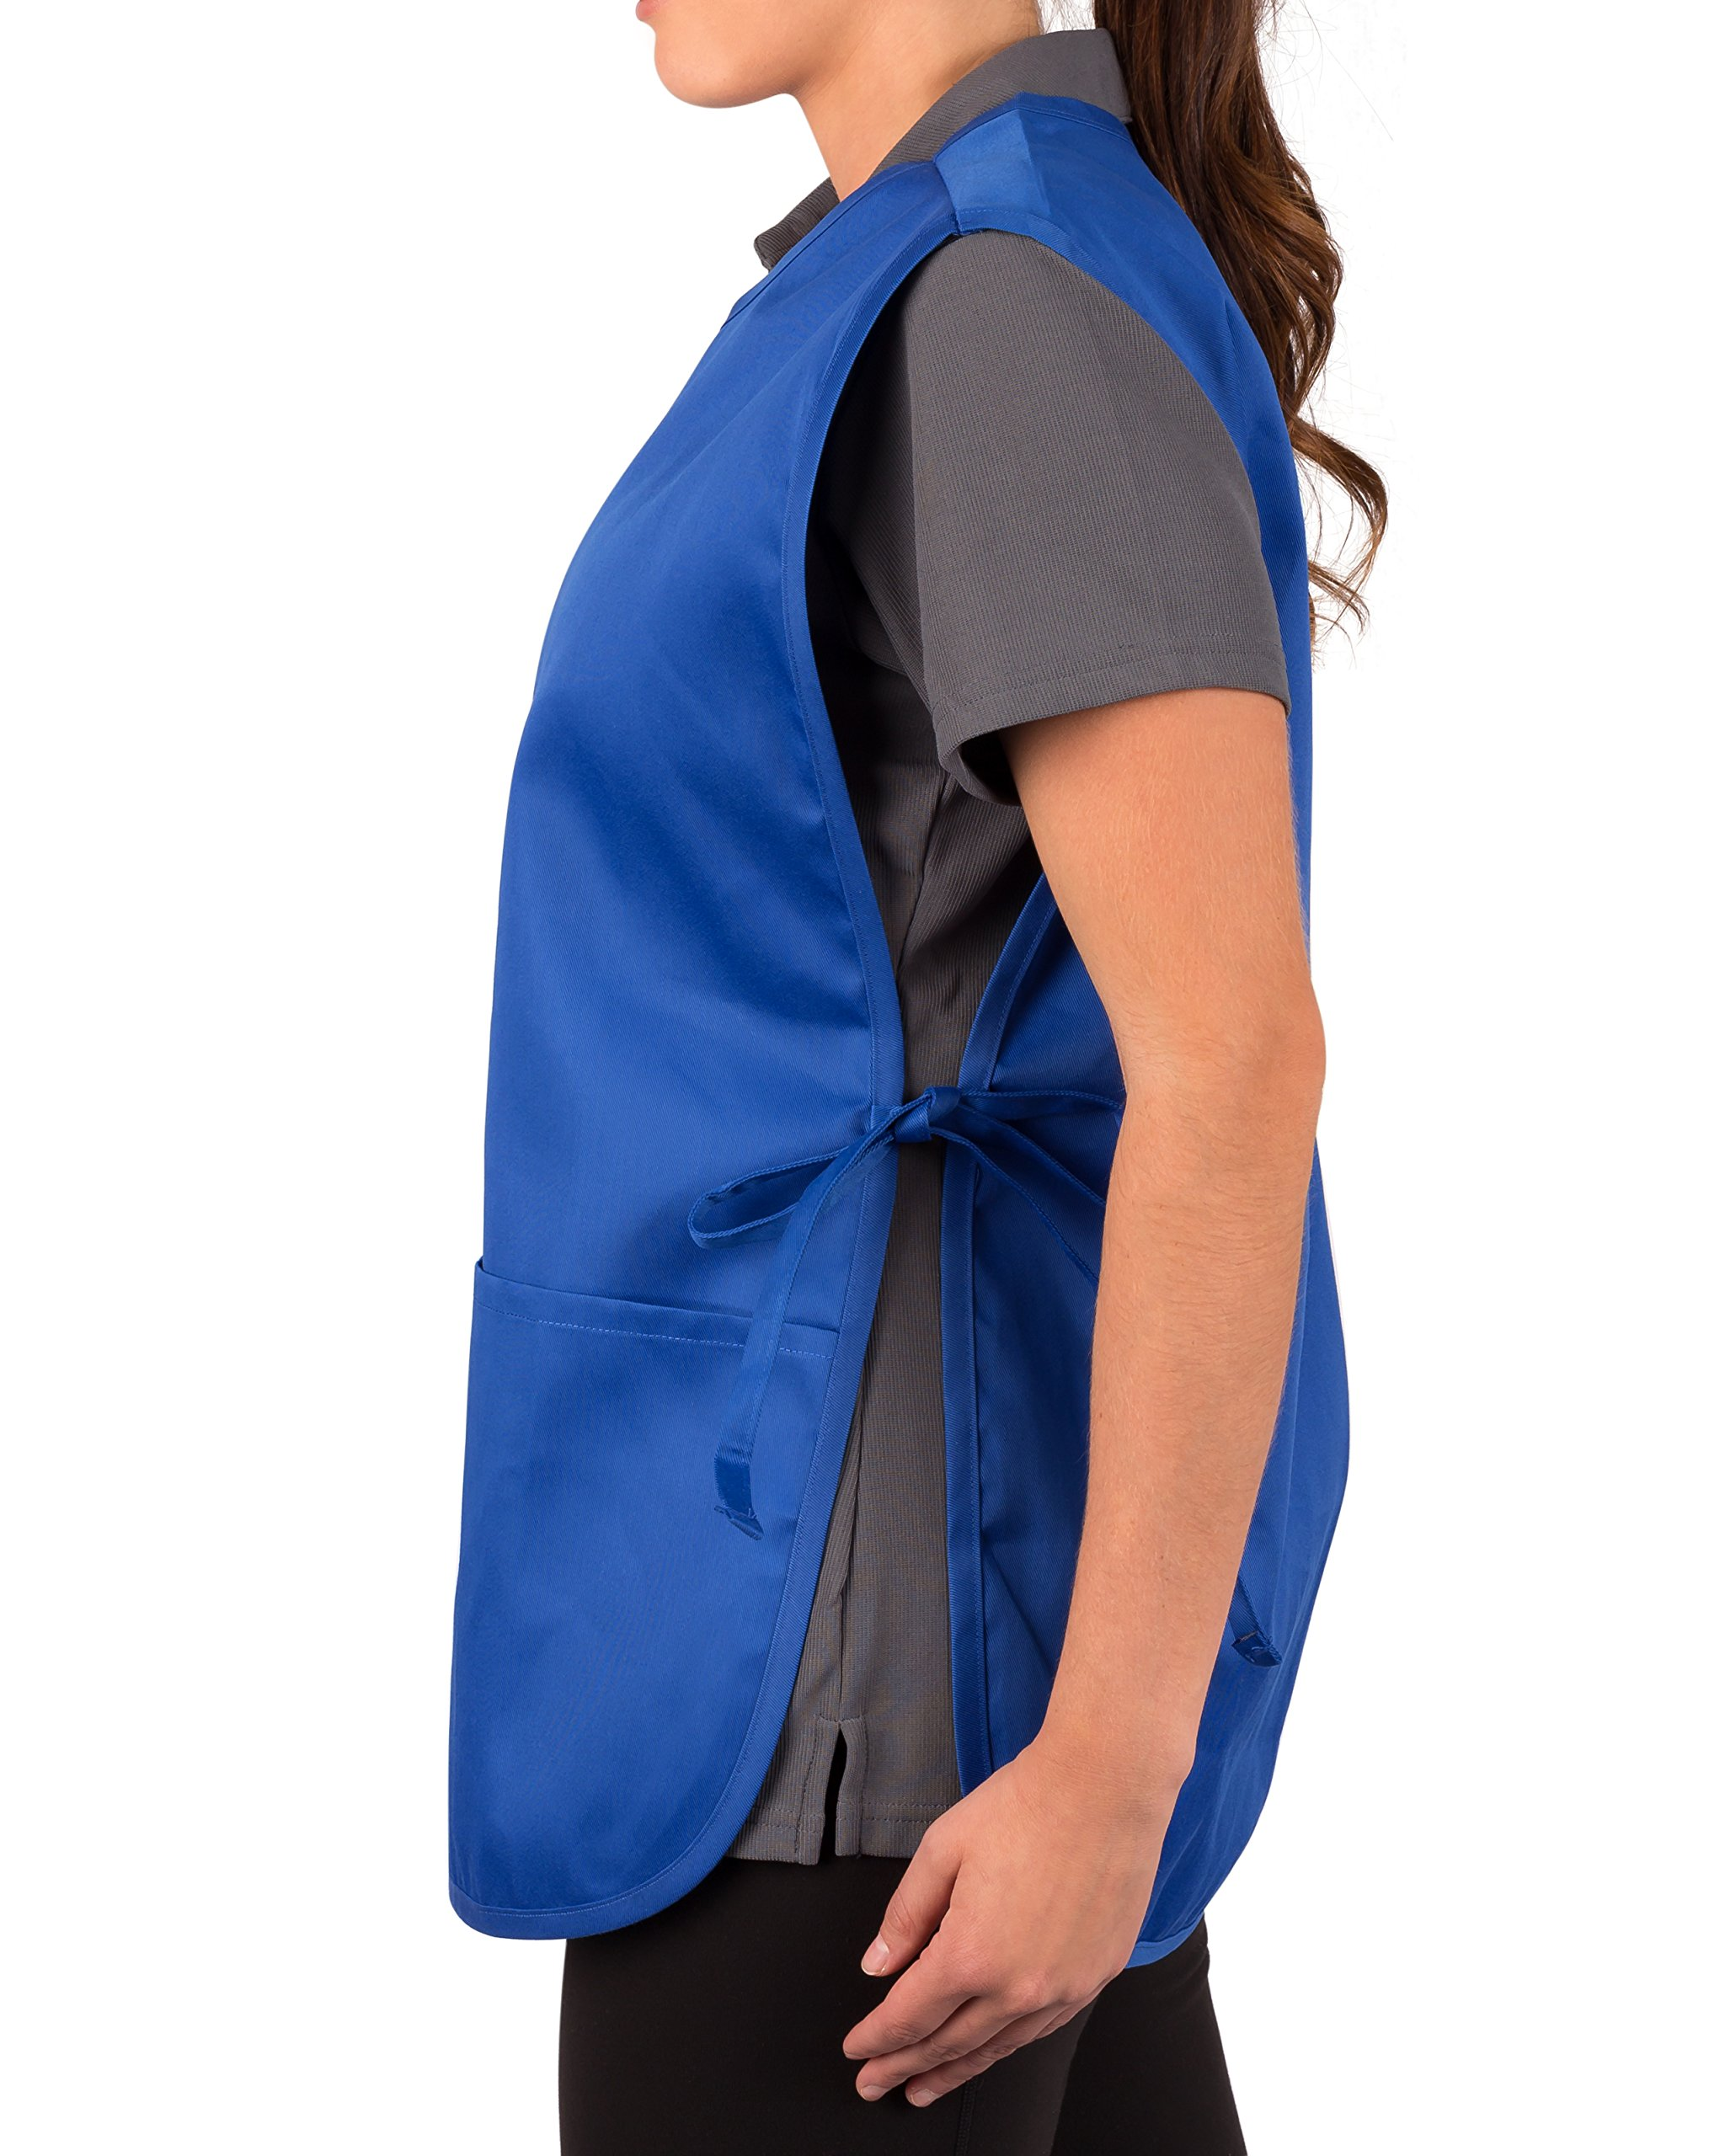 Royal Blue Cobbler Apron, Pack of 36 by KNG (Image #3)